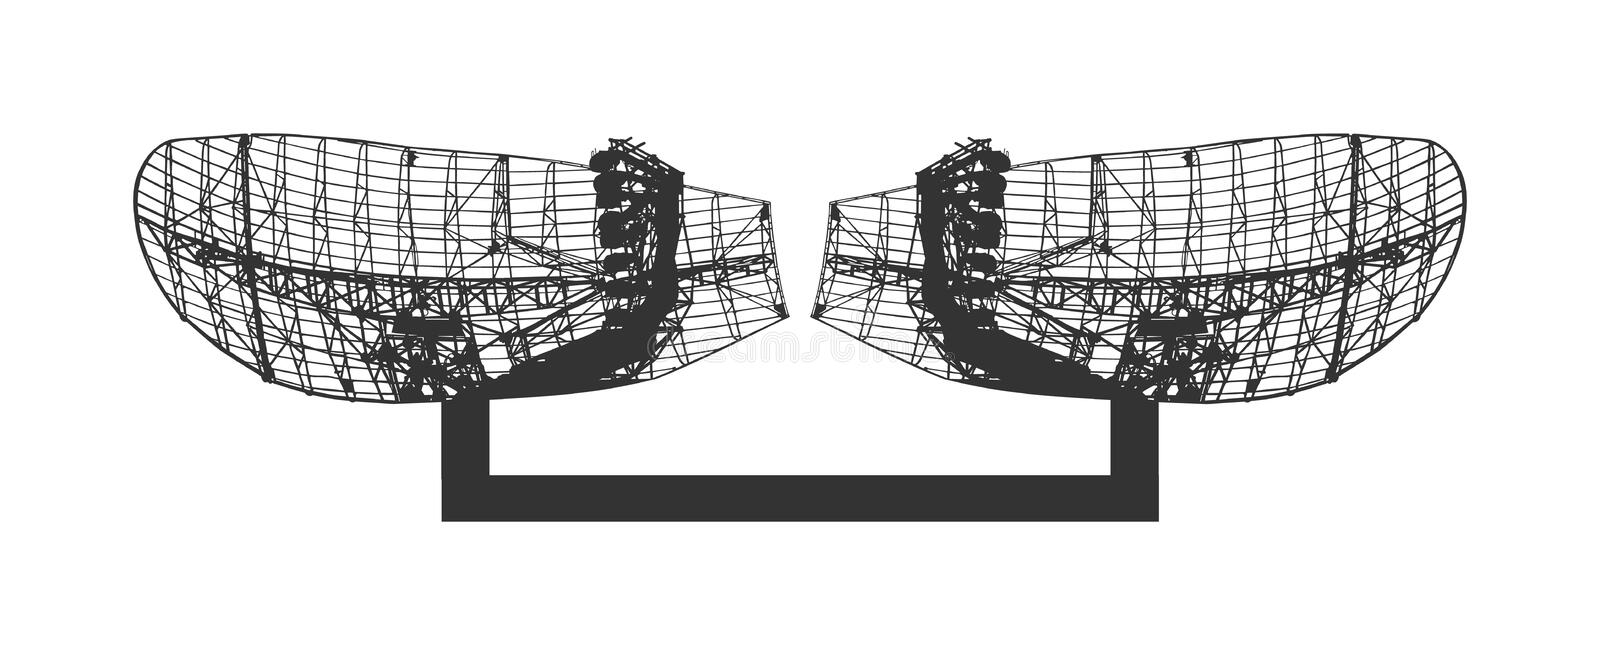 Military radar air surveillance vector silhouette isolated on white background. Telecommunication system. Digital antenna system. vector illustration